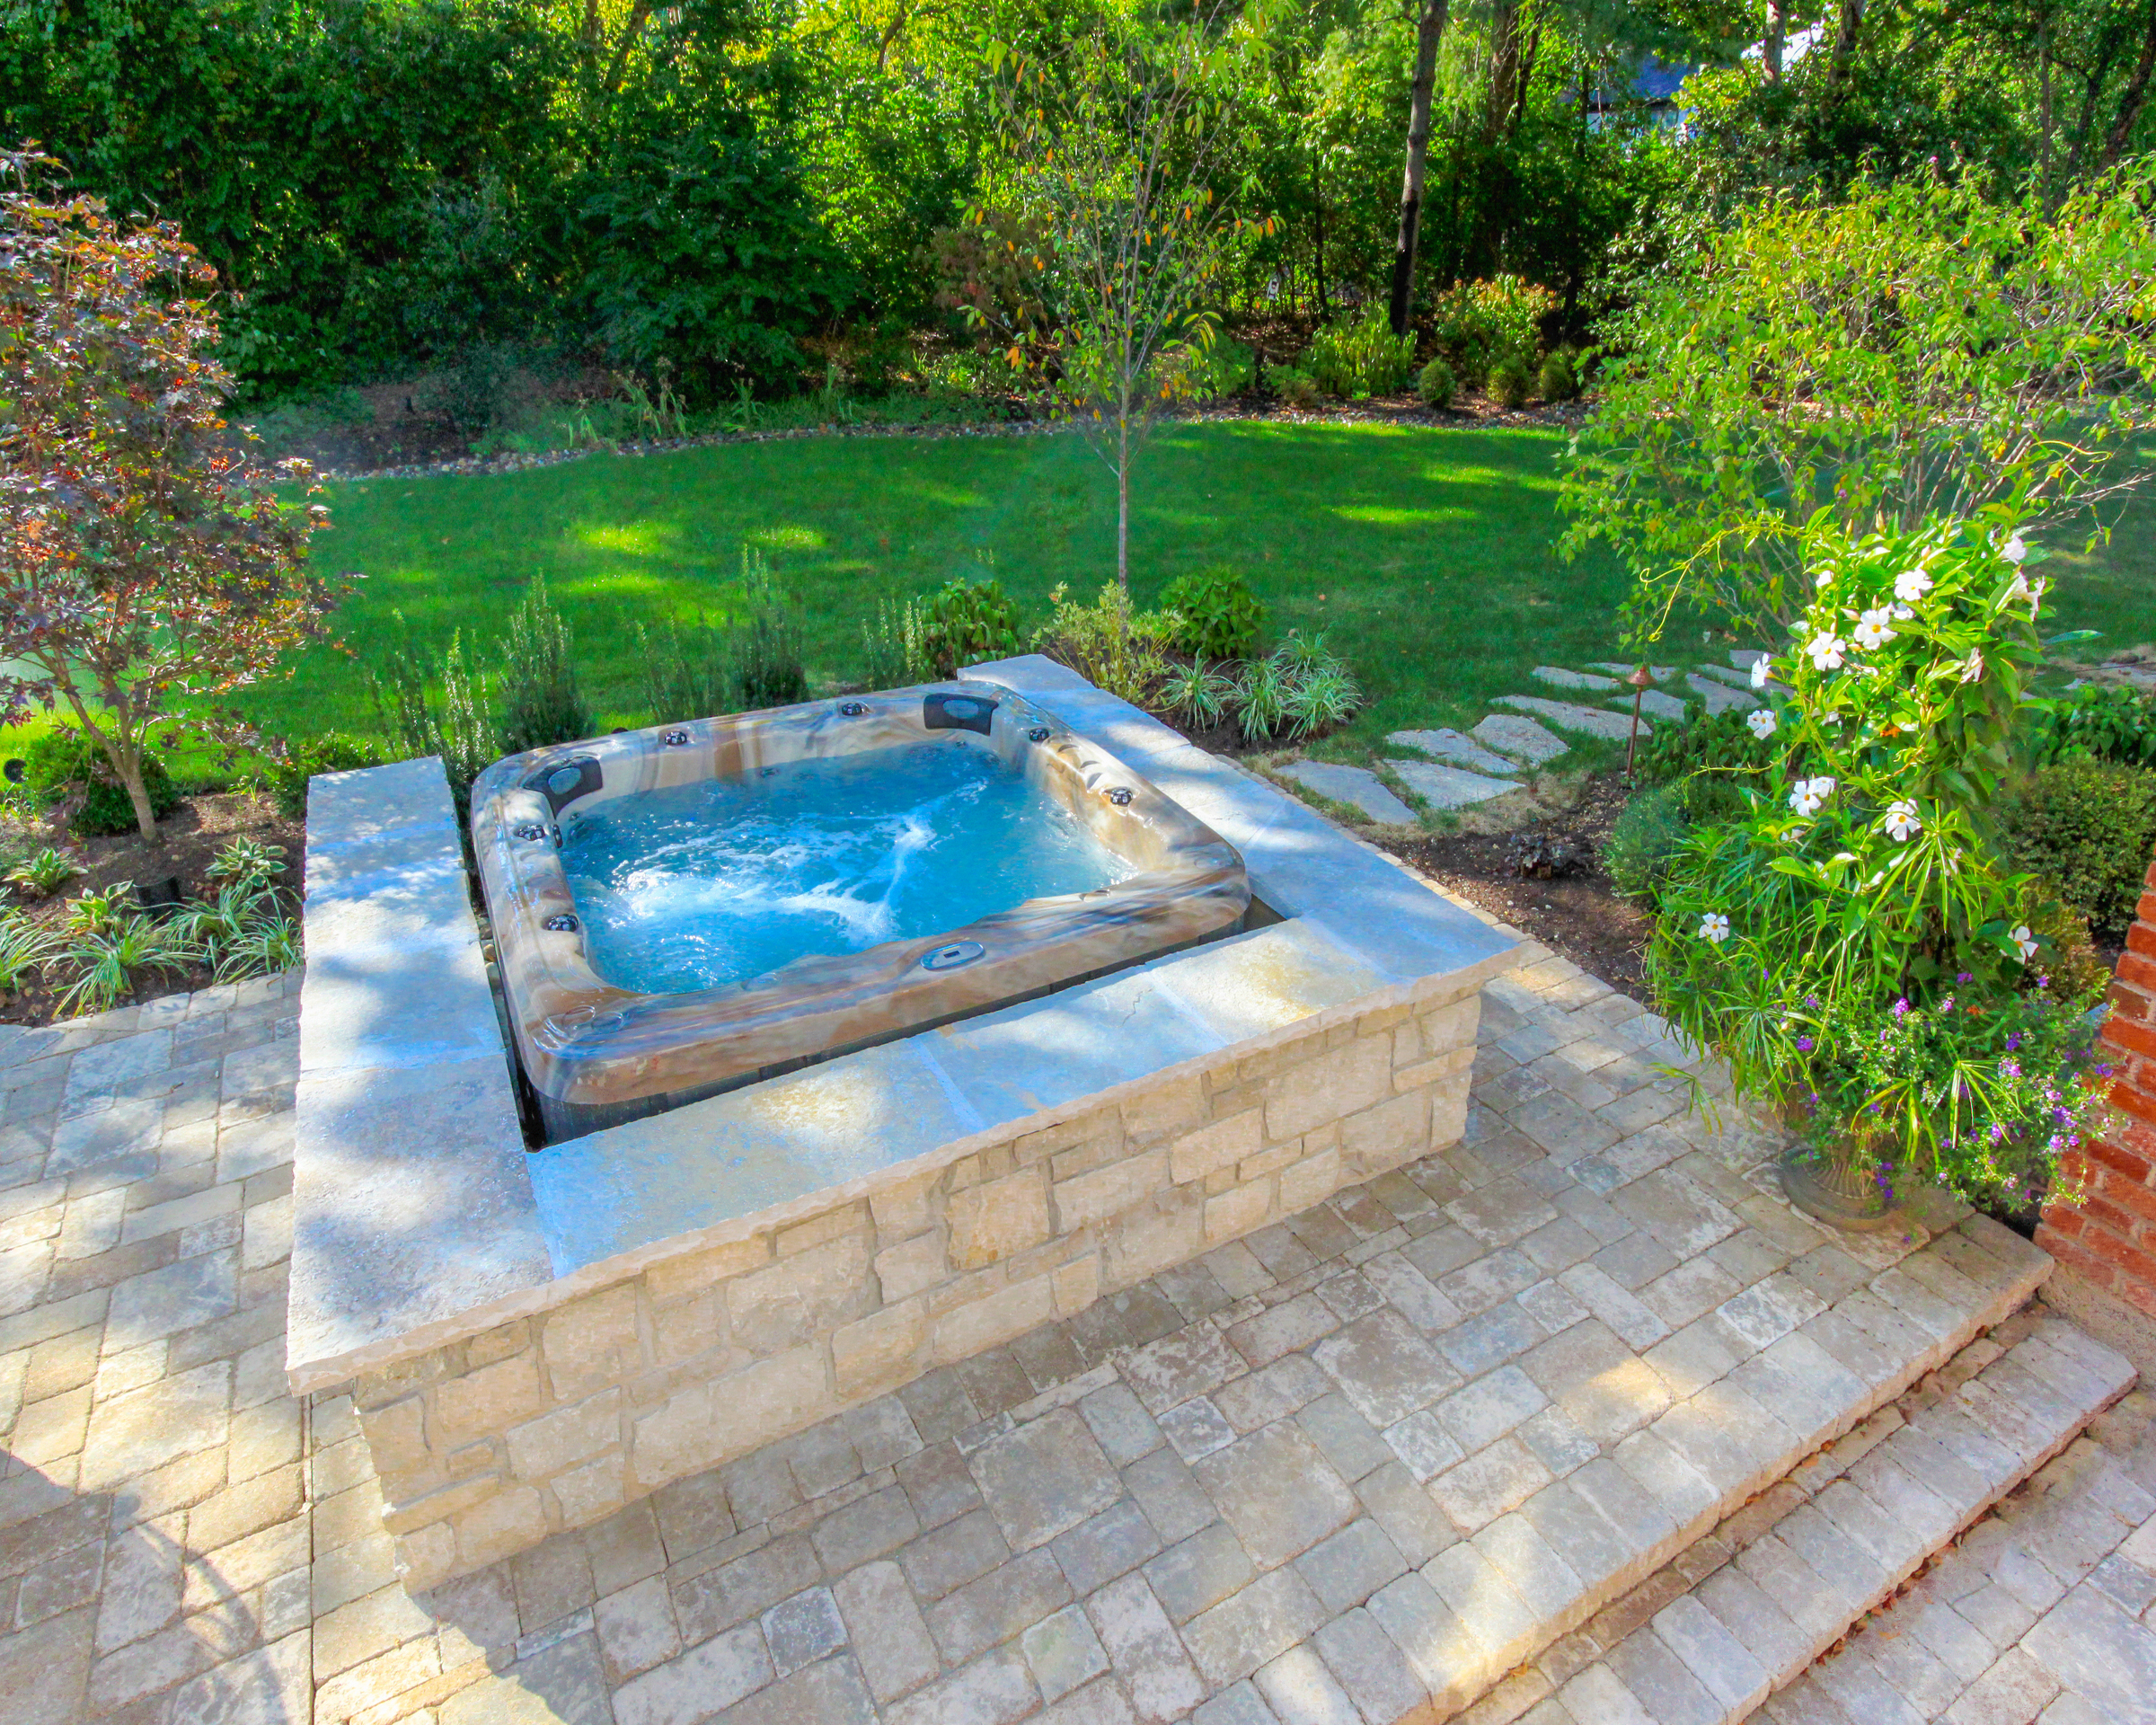 Jacuzzi Pool In Ground Prestige Pools Spas St Louis Pools Hot Tubs Swim Spas